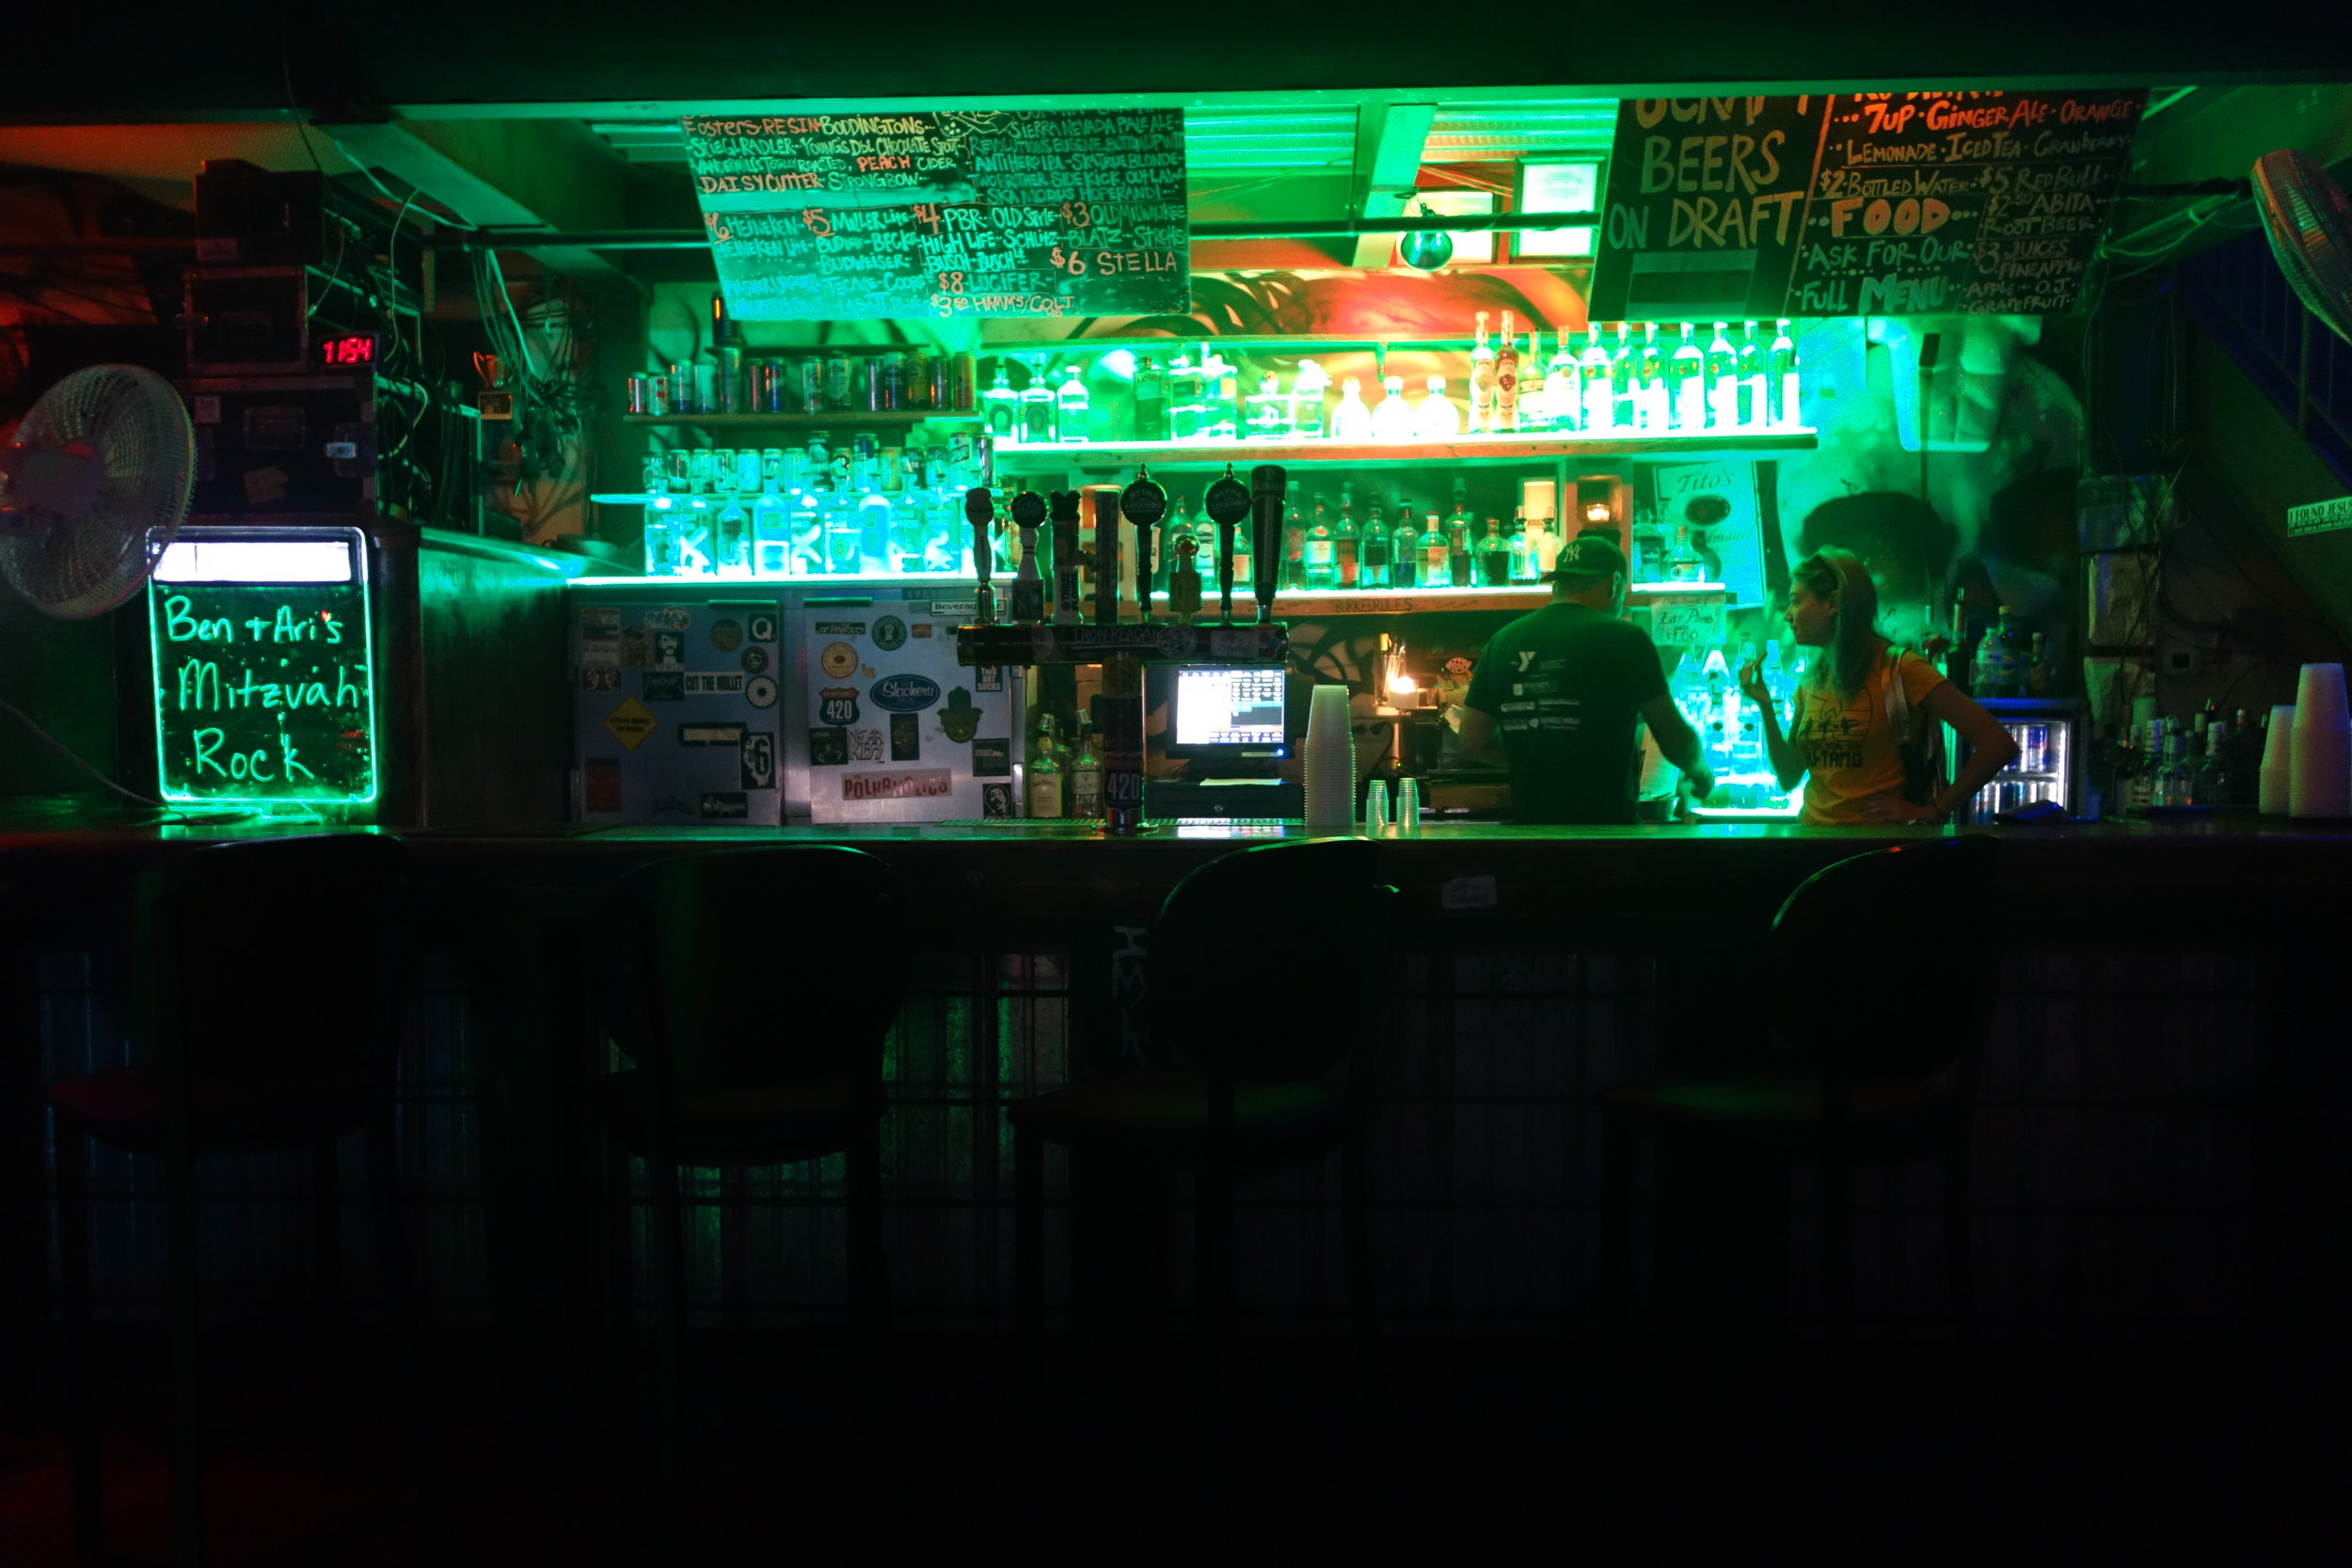 Bar by the stage!